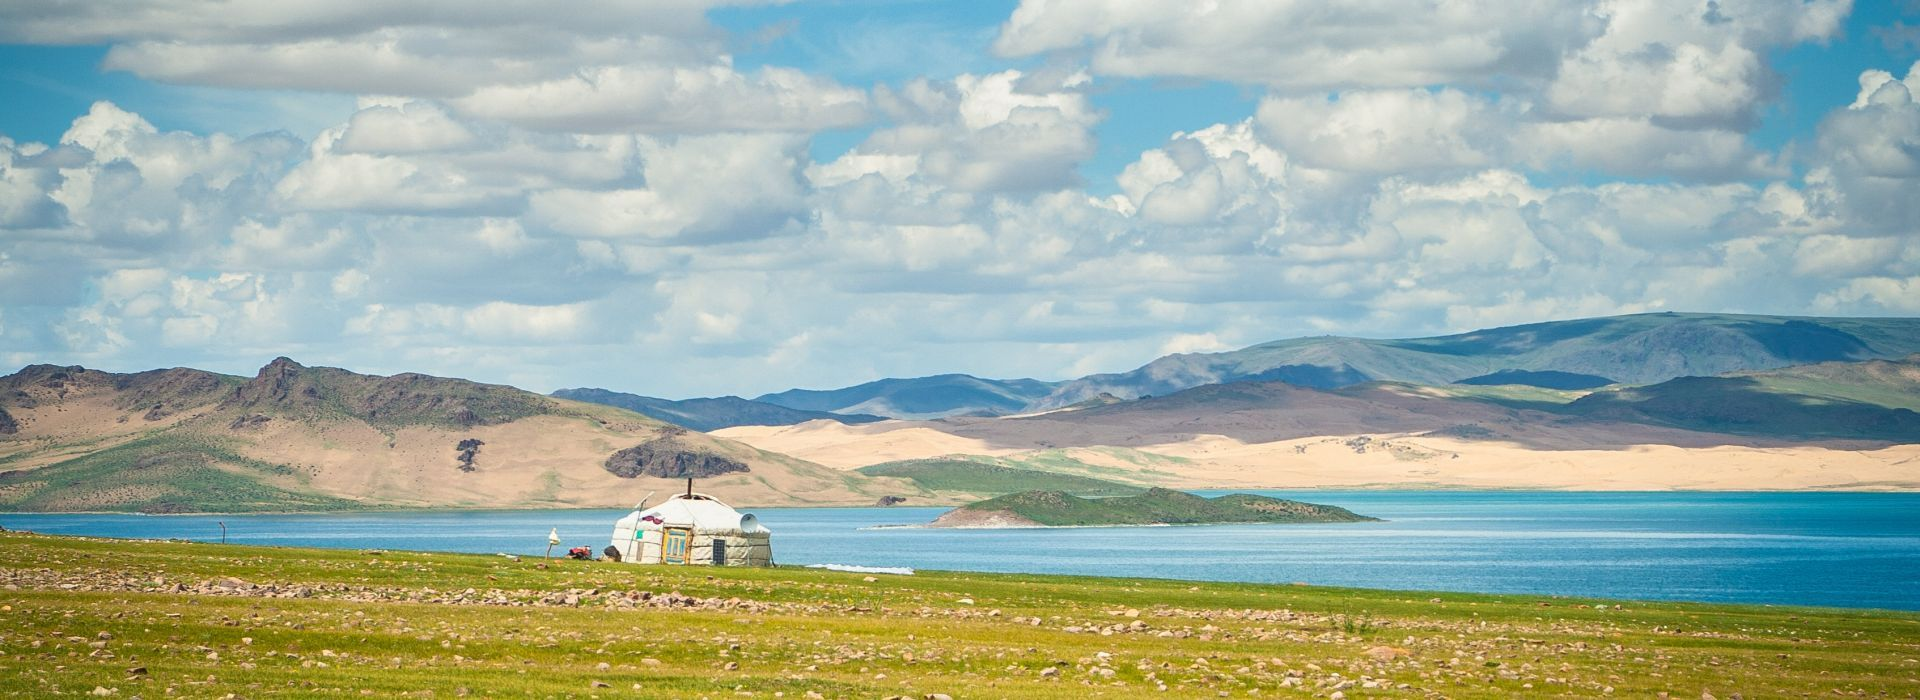 National parks Tours in Mongolia